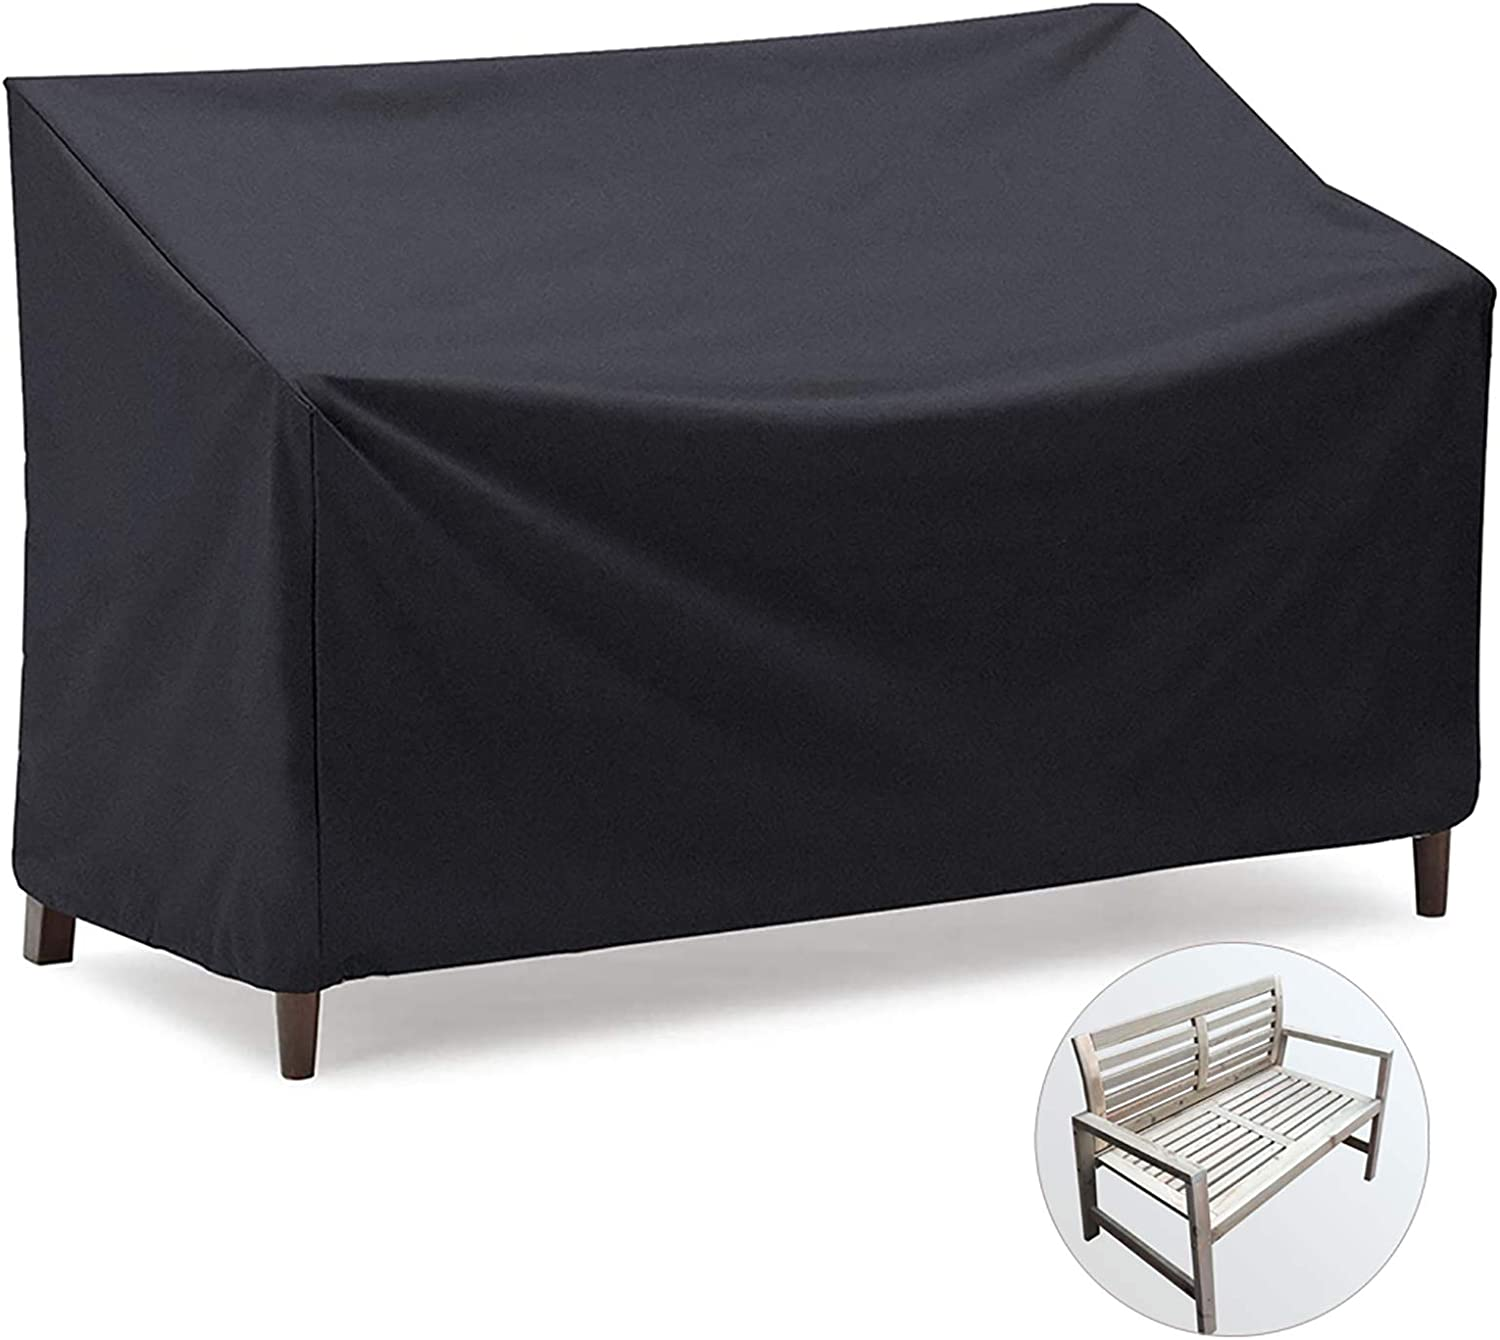 Onlyme Outdoor Patio Bench Cover Waterproof, 3 Seater, Loveseat, Sofa, Glider, Furniture Cover